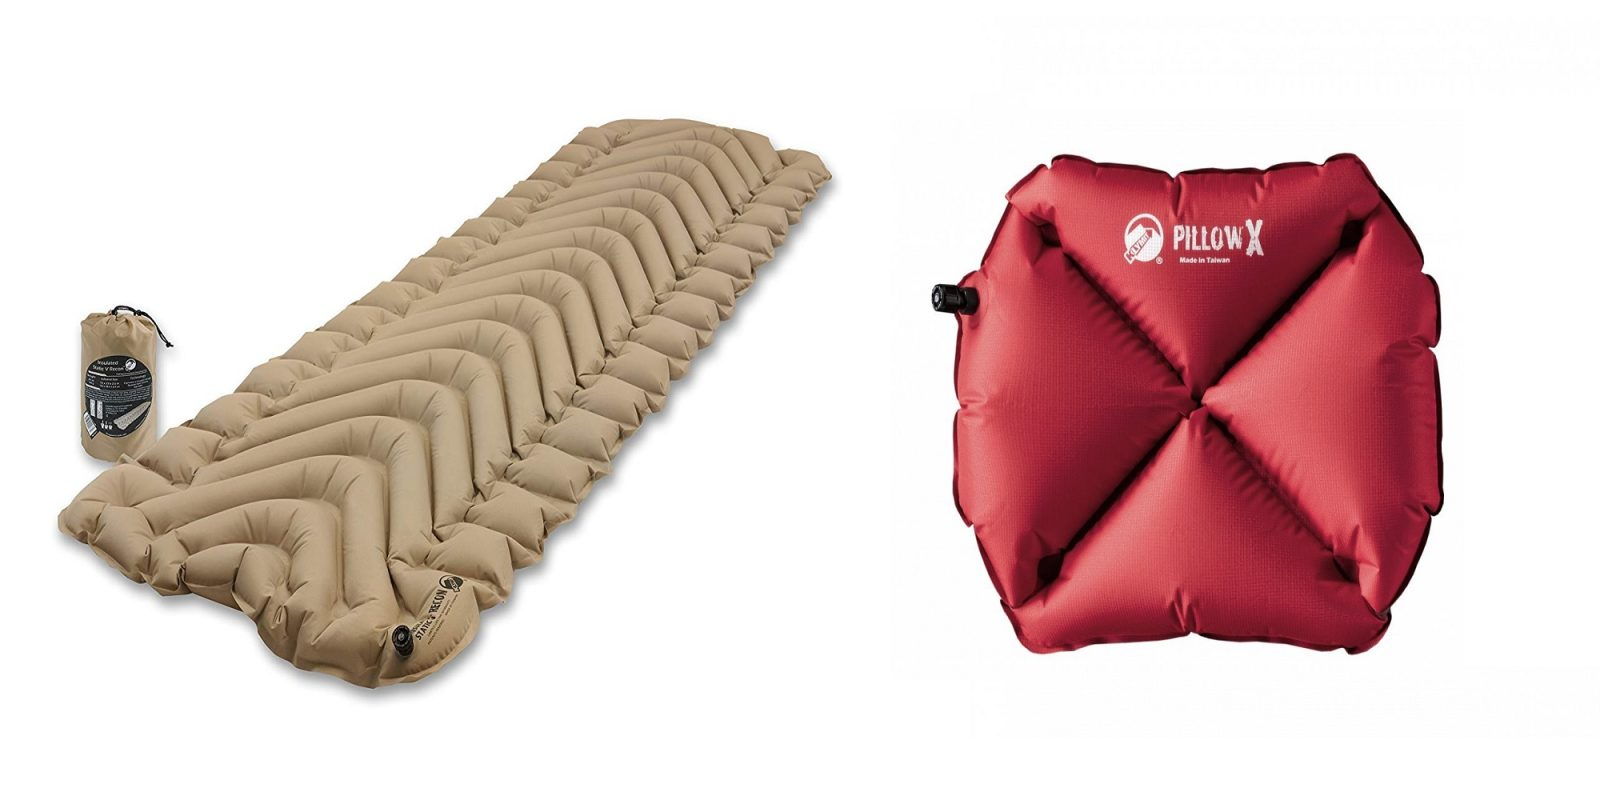 Get ready to go camping with Klymit gear at up to 30% off, deals from $12